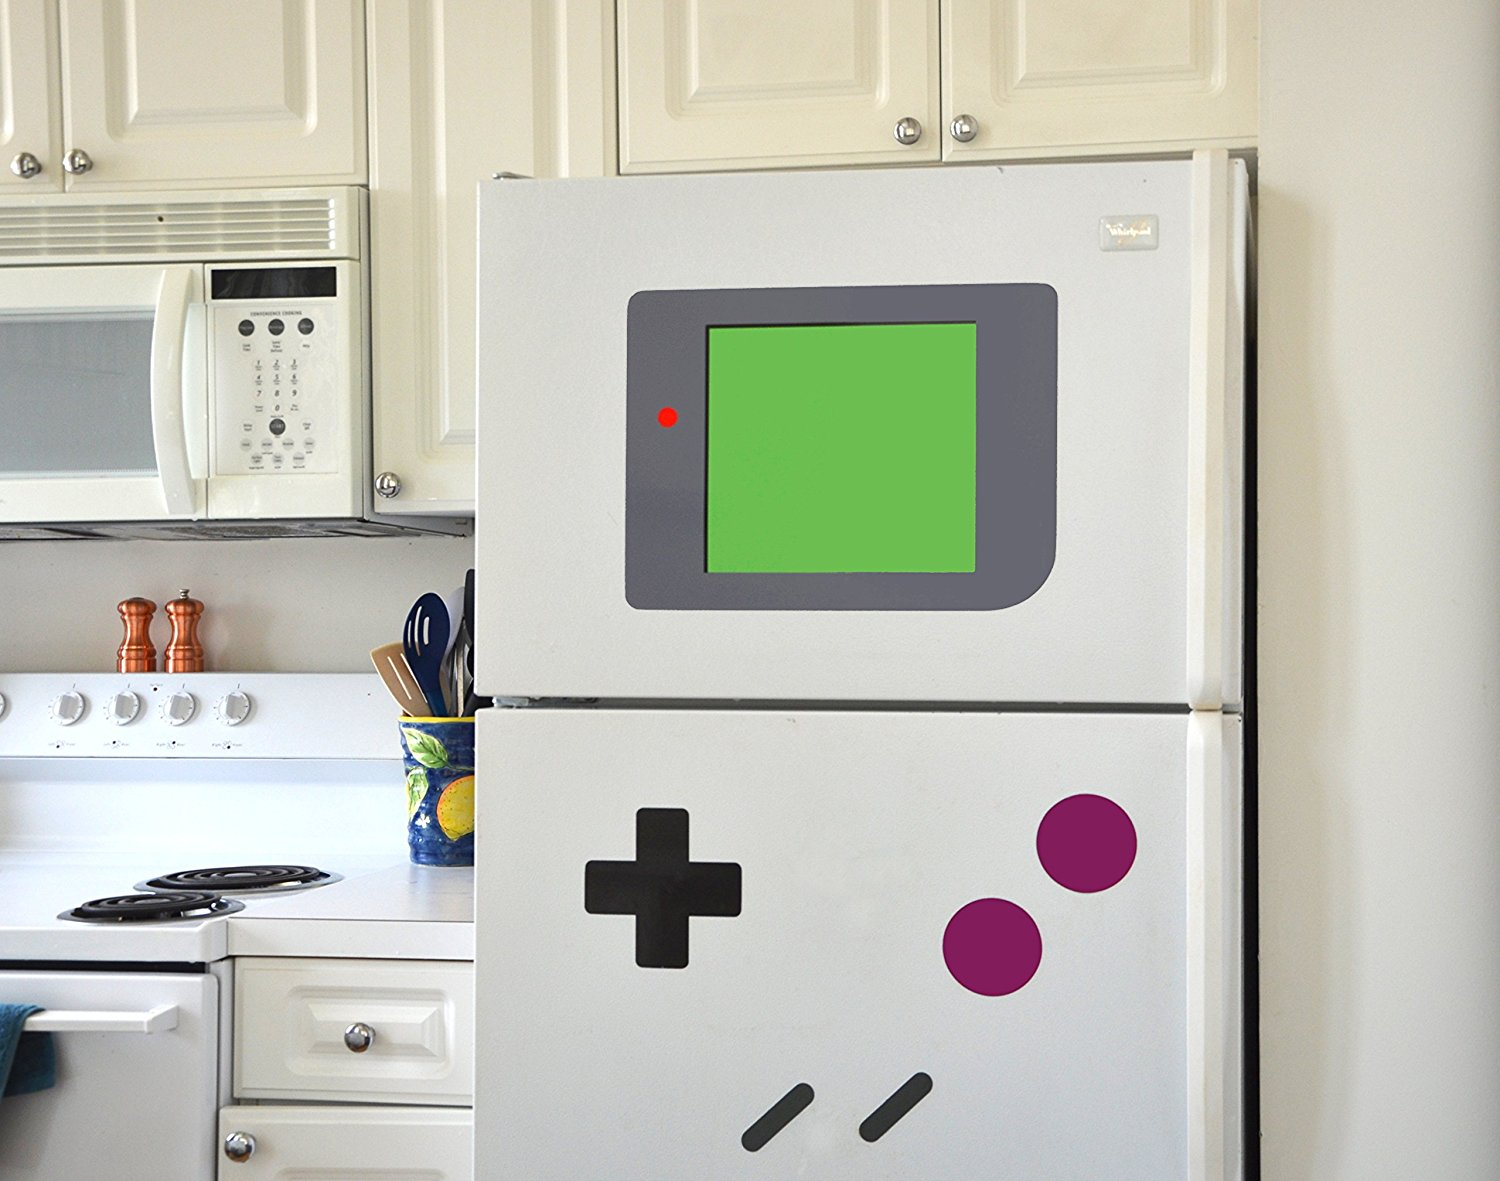 Nintendo game boy refrigerator magnets